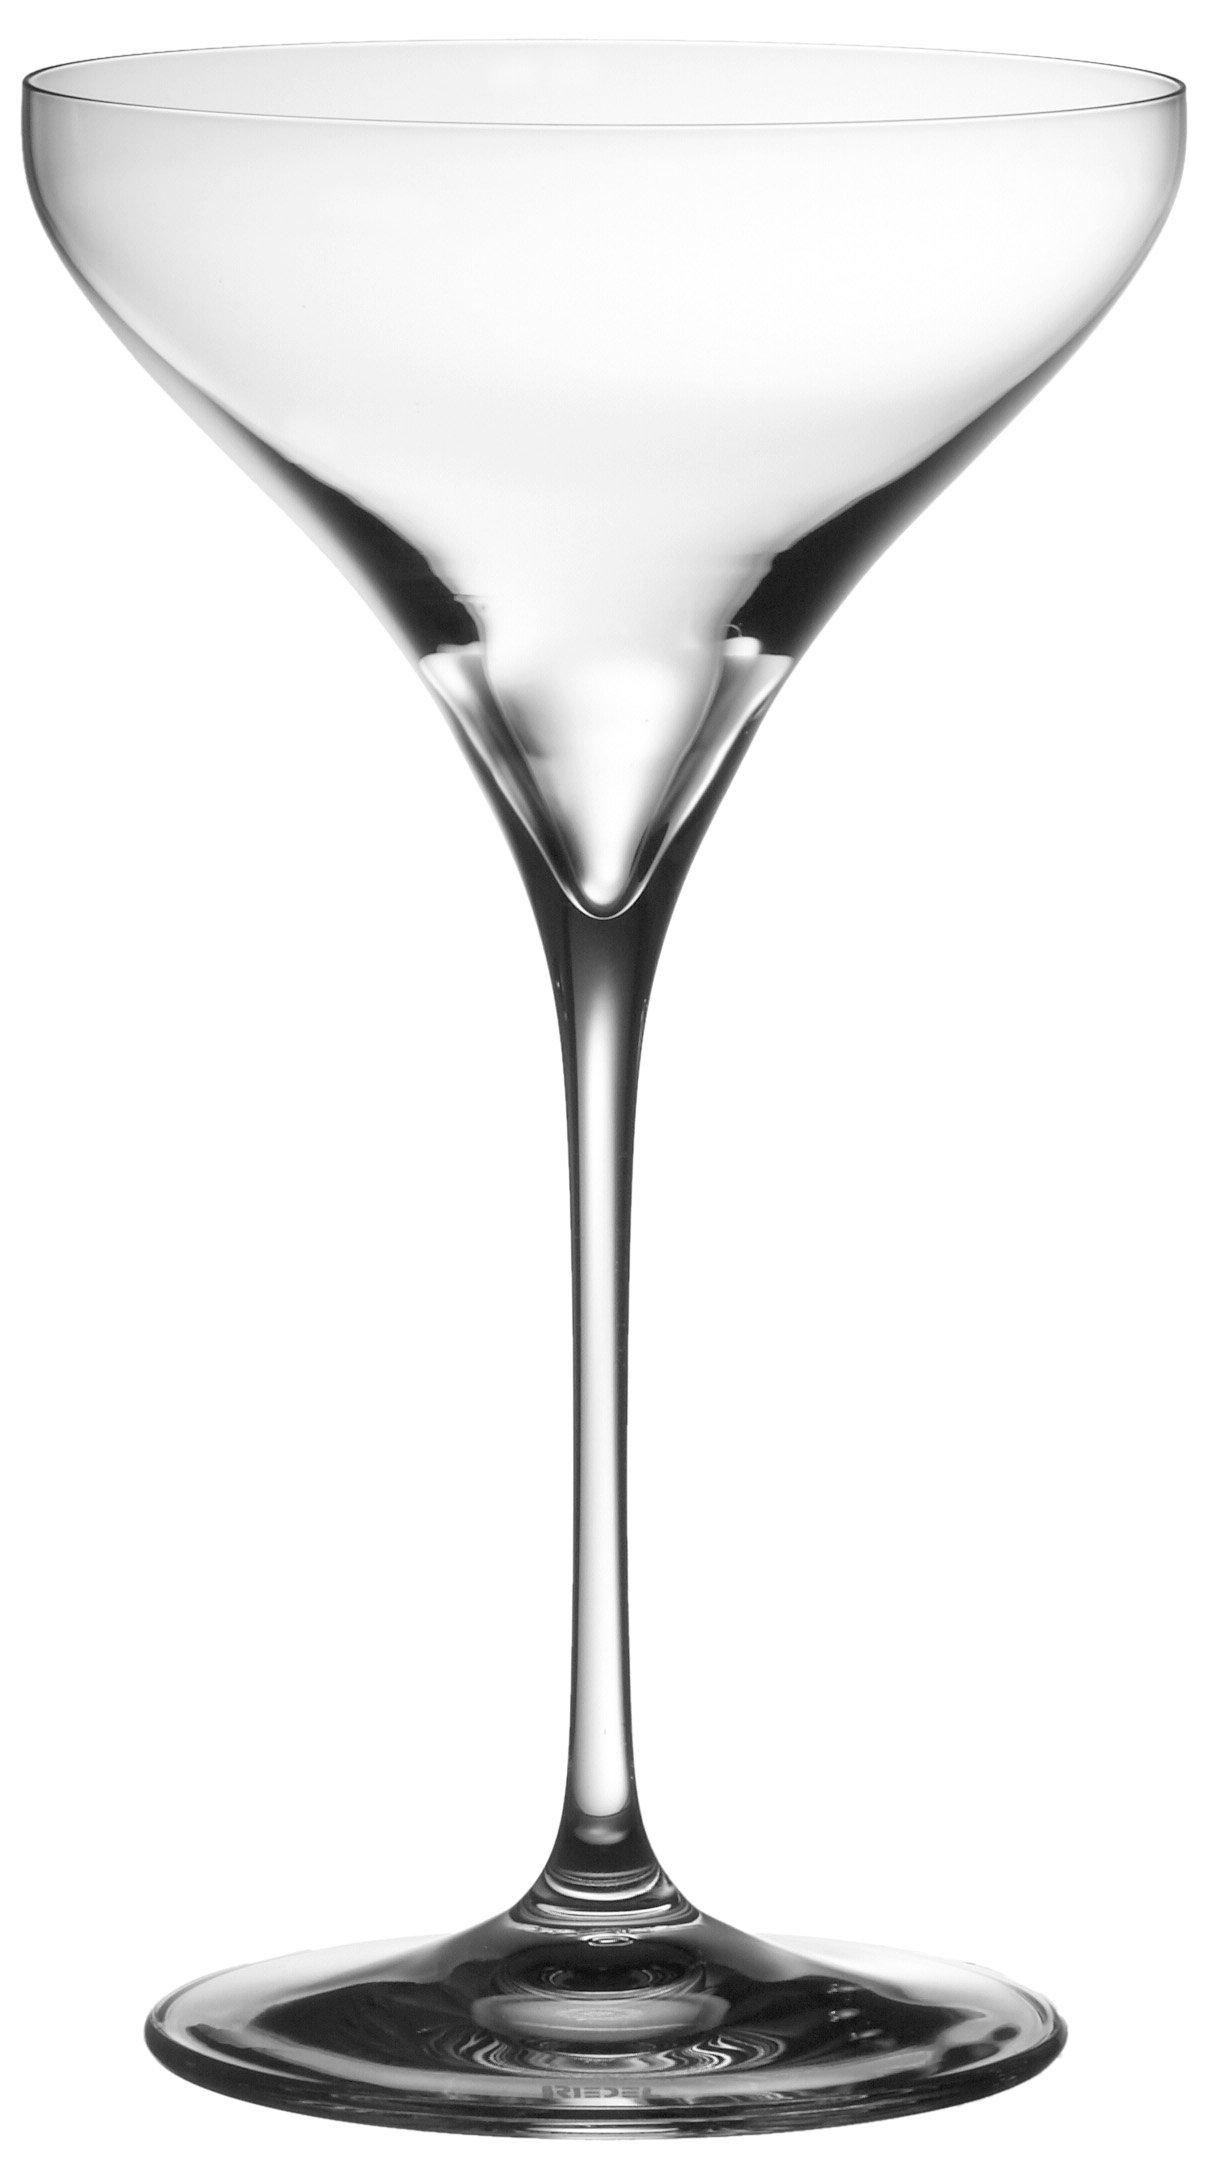 Riedel Vitis Martini Glass, Set of 2